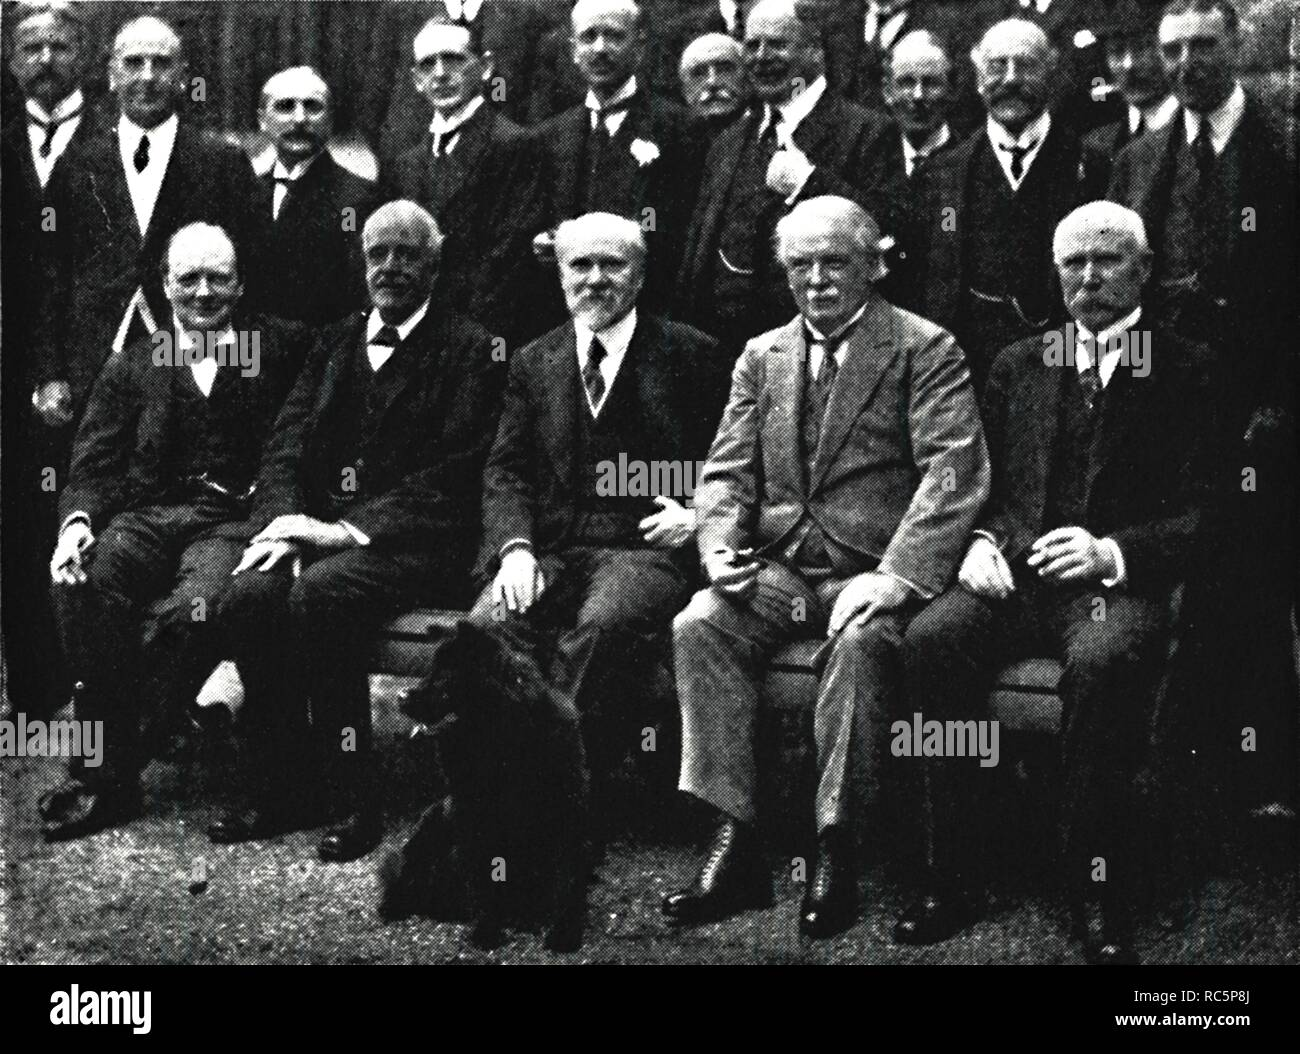 """'At Number 10, Downing Street', c1922, (1945). Sir Winston Churchill (1874-1965) with Arthur Balfour, French President Raymond Poincare, British Prime Minister David Lloyd George and Marshal Philippe Petain, at a lunch given for Poincare. British politician and statesman Winston Churchill was Prime Minister of the United Kingdom from 1940 to 1945, and again from 1951 to 1955. From """"The Life and Times of Winston Churchill"""", by Malcolm Thomson. [Odhams Press Limited, London] - Stock Image"""